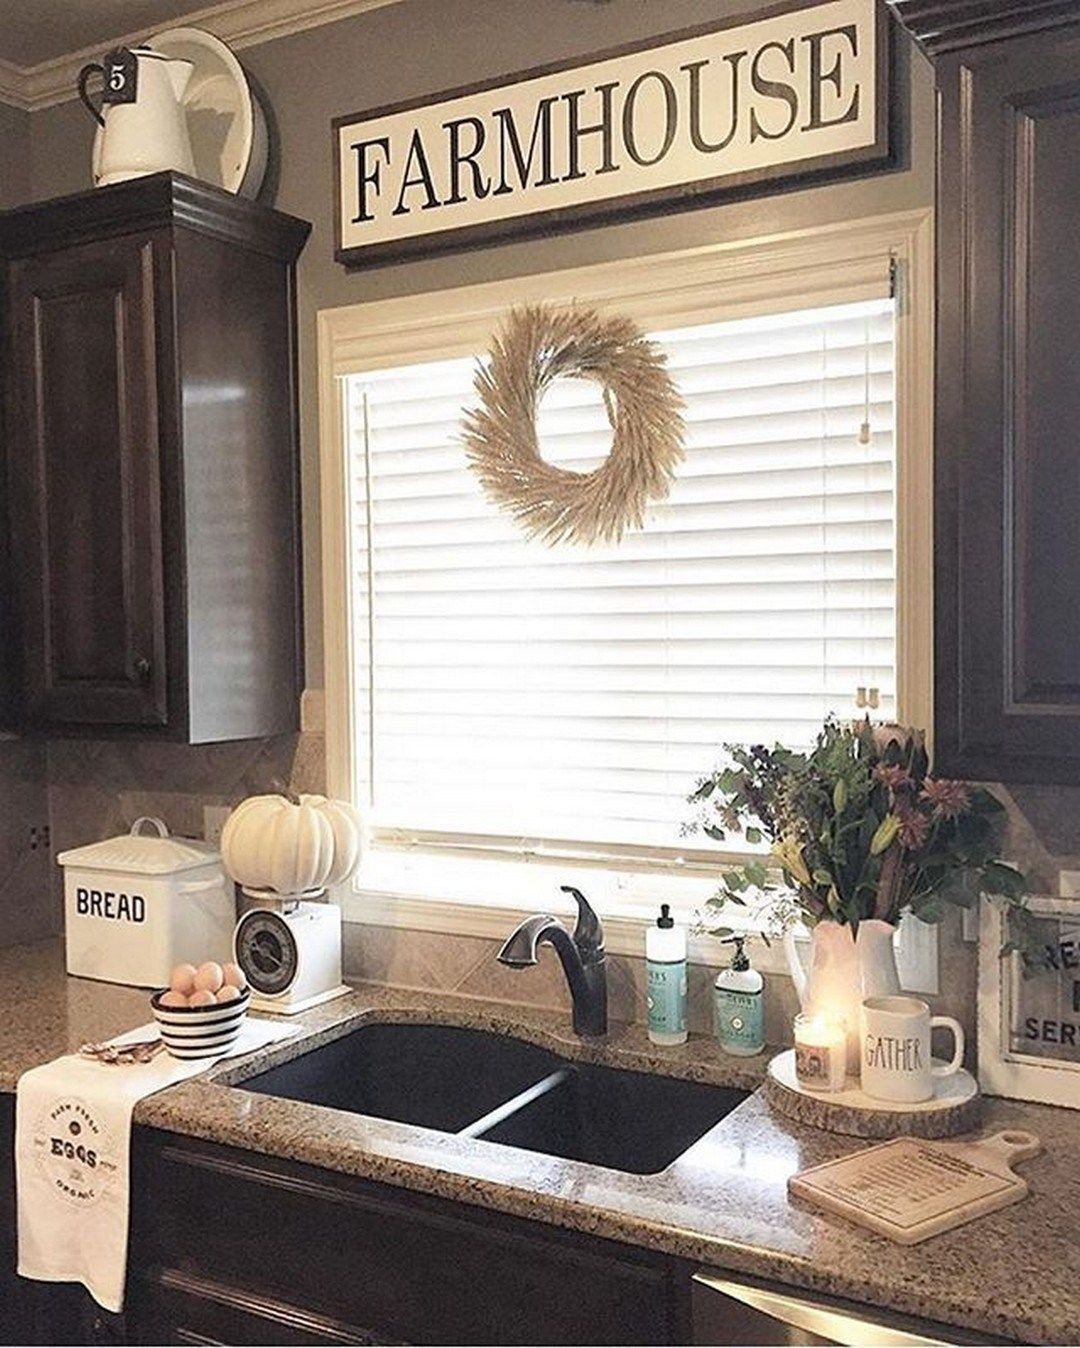 122 cheap easy and simple diy rustic home decor ideas 46 affordable farmhouse kitchen on kitchen cabinets rustic farmhouse style id=28691